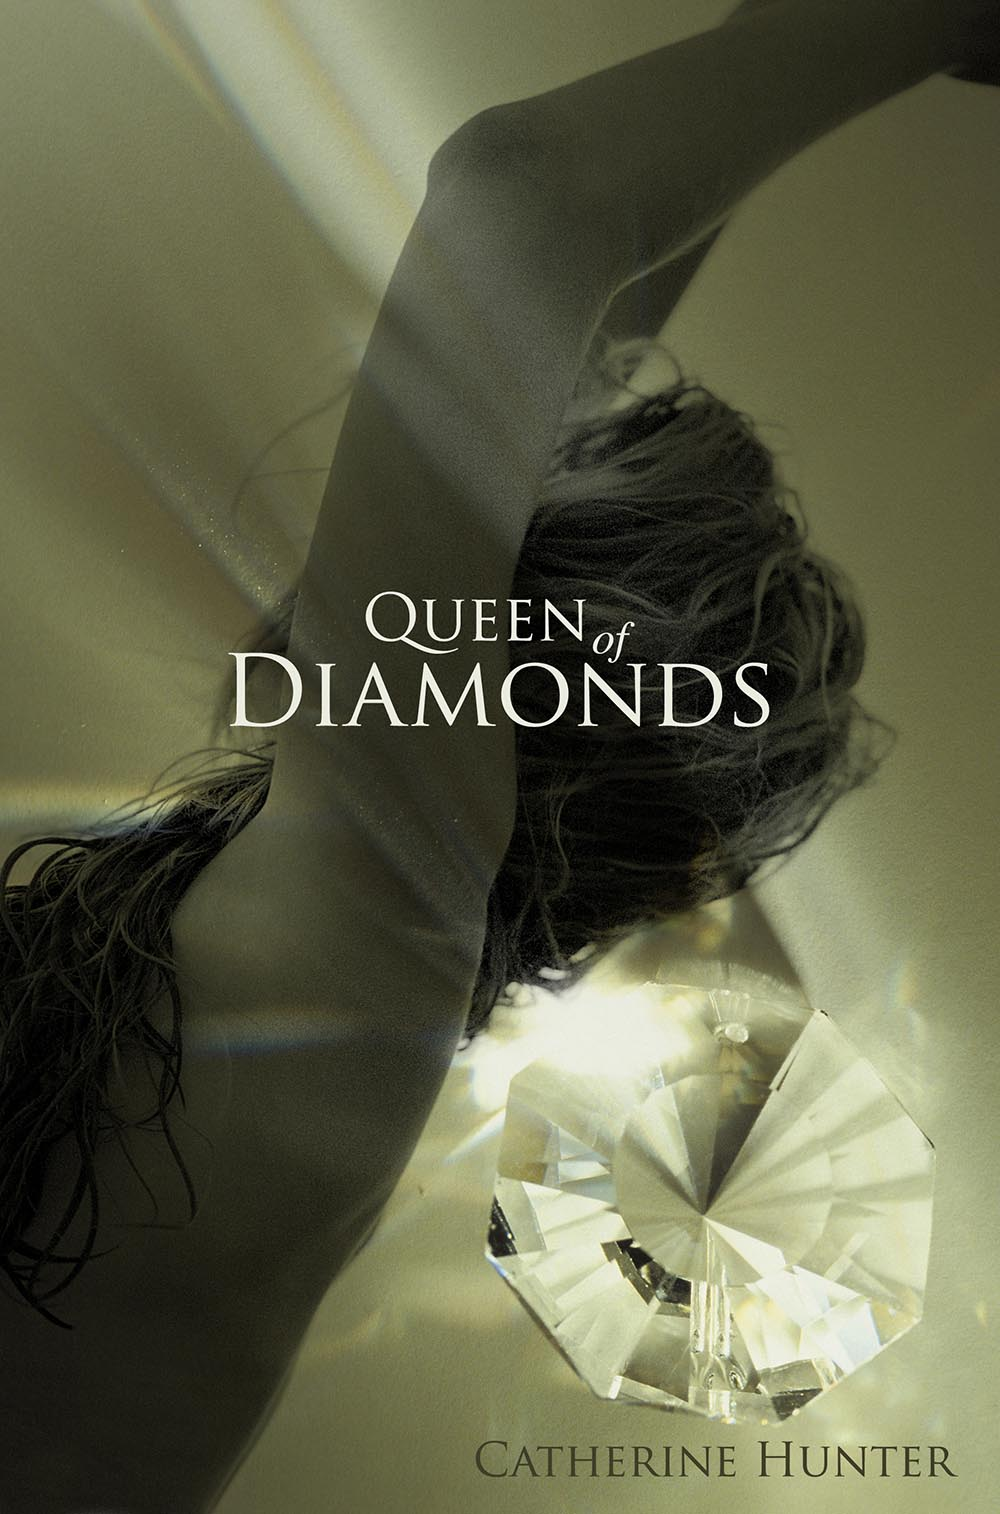 Queen of Diamonds by Catherine Hunter